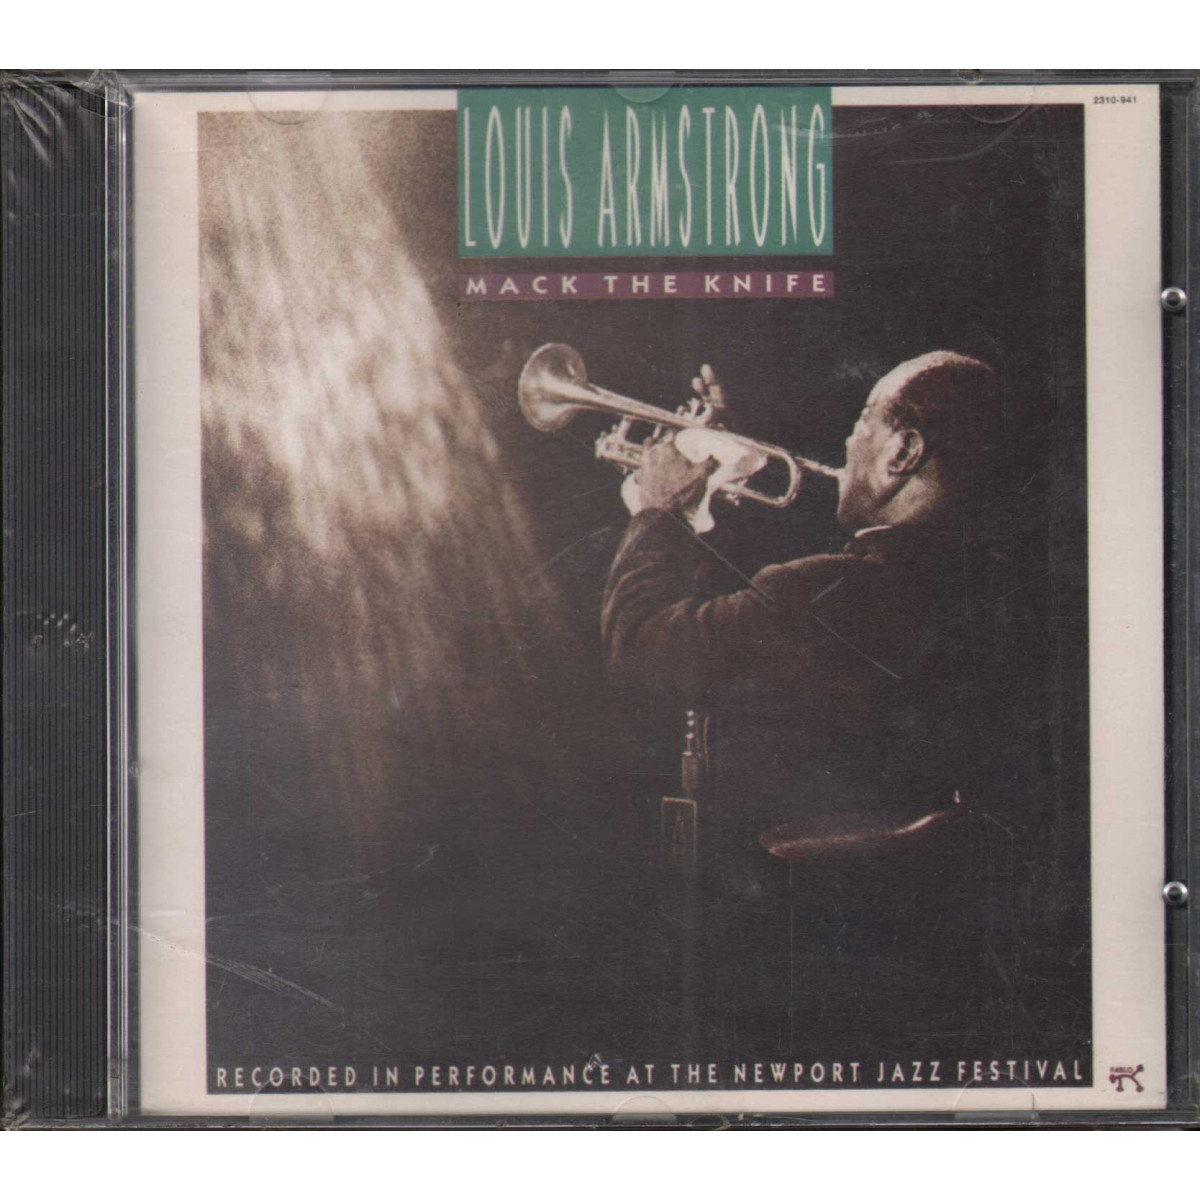 Louis Armstrong CD Mack The Knife / Pablo Records Sigillato 0025218094122